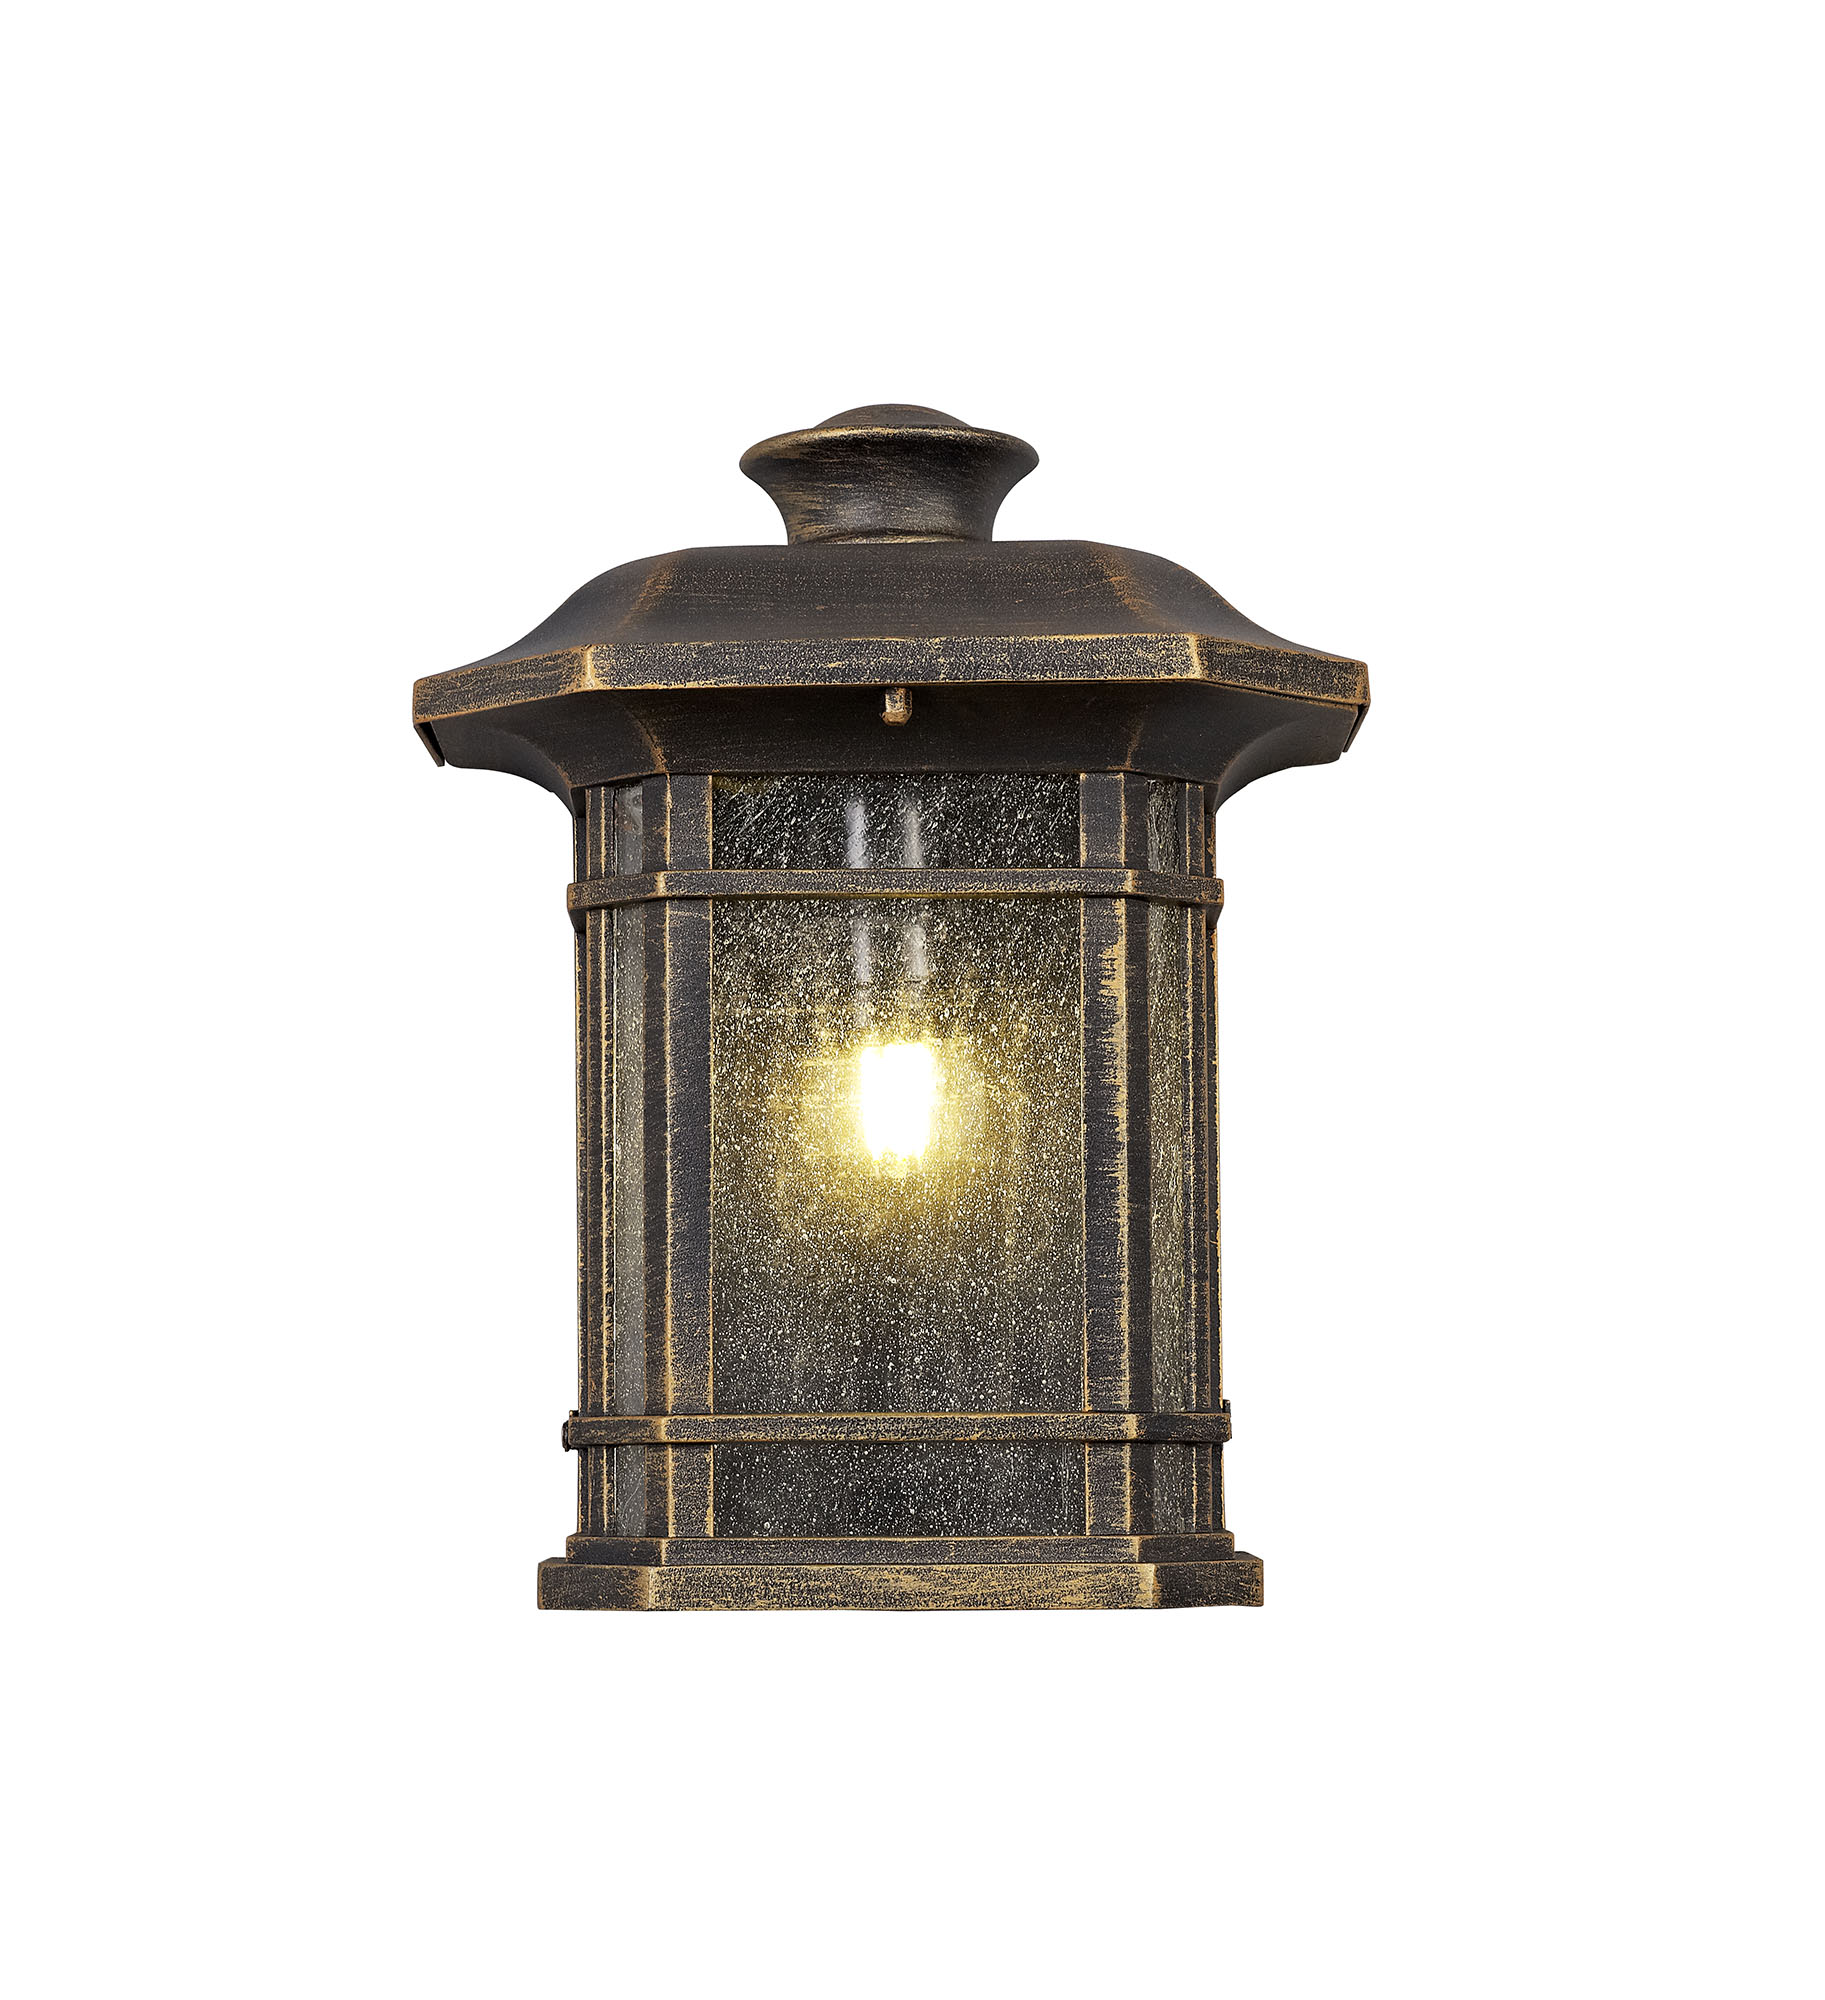 Half Wall Lamp, 1 x E27, Brushed Black Gold/Seeded Glass, IP54, 2yrs Warranty